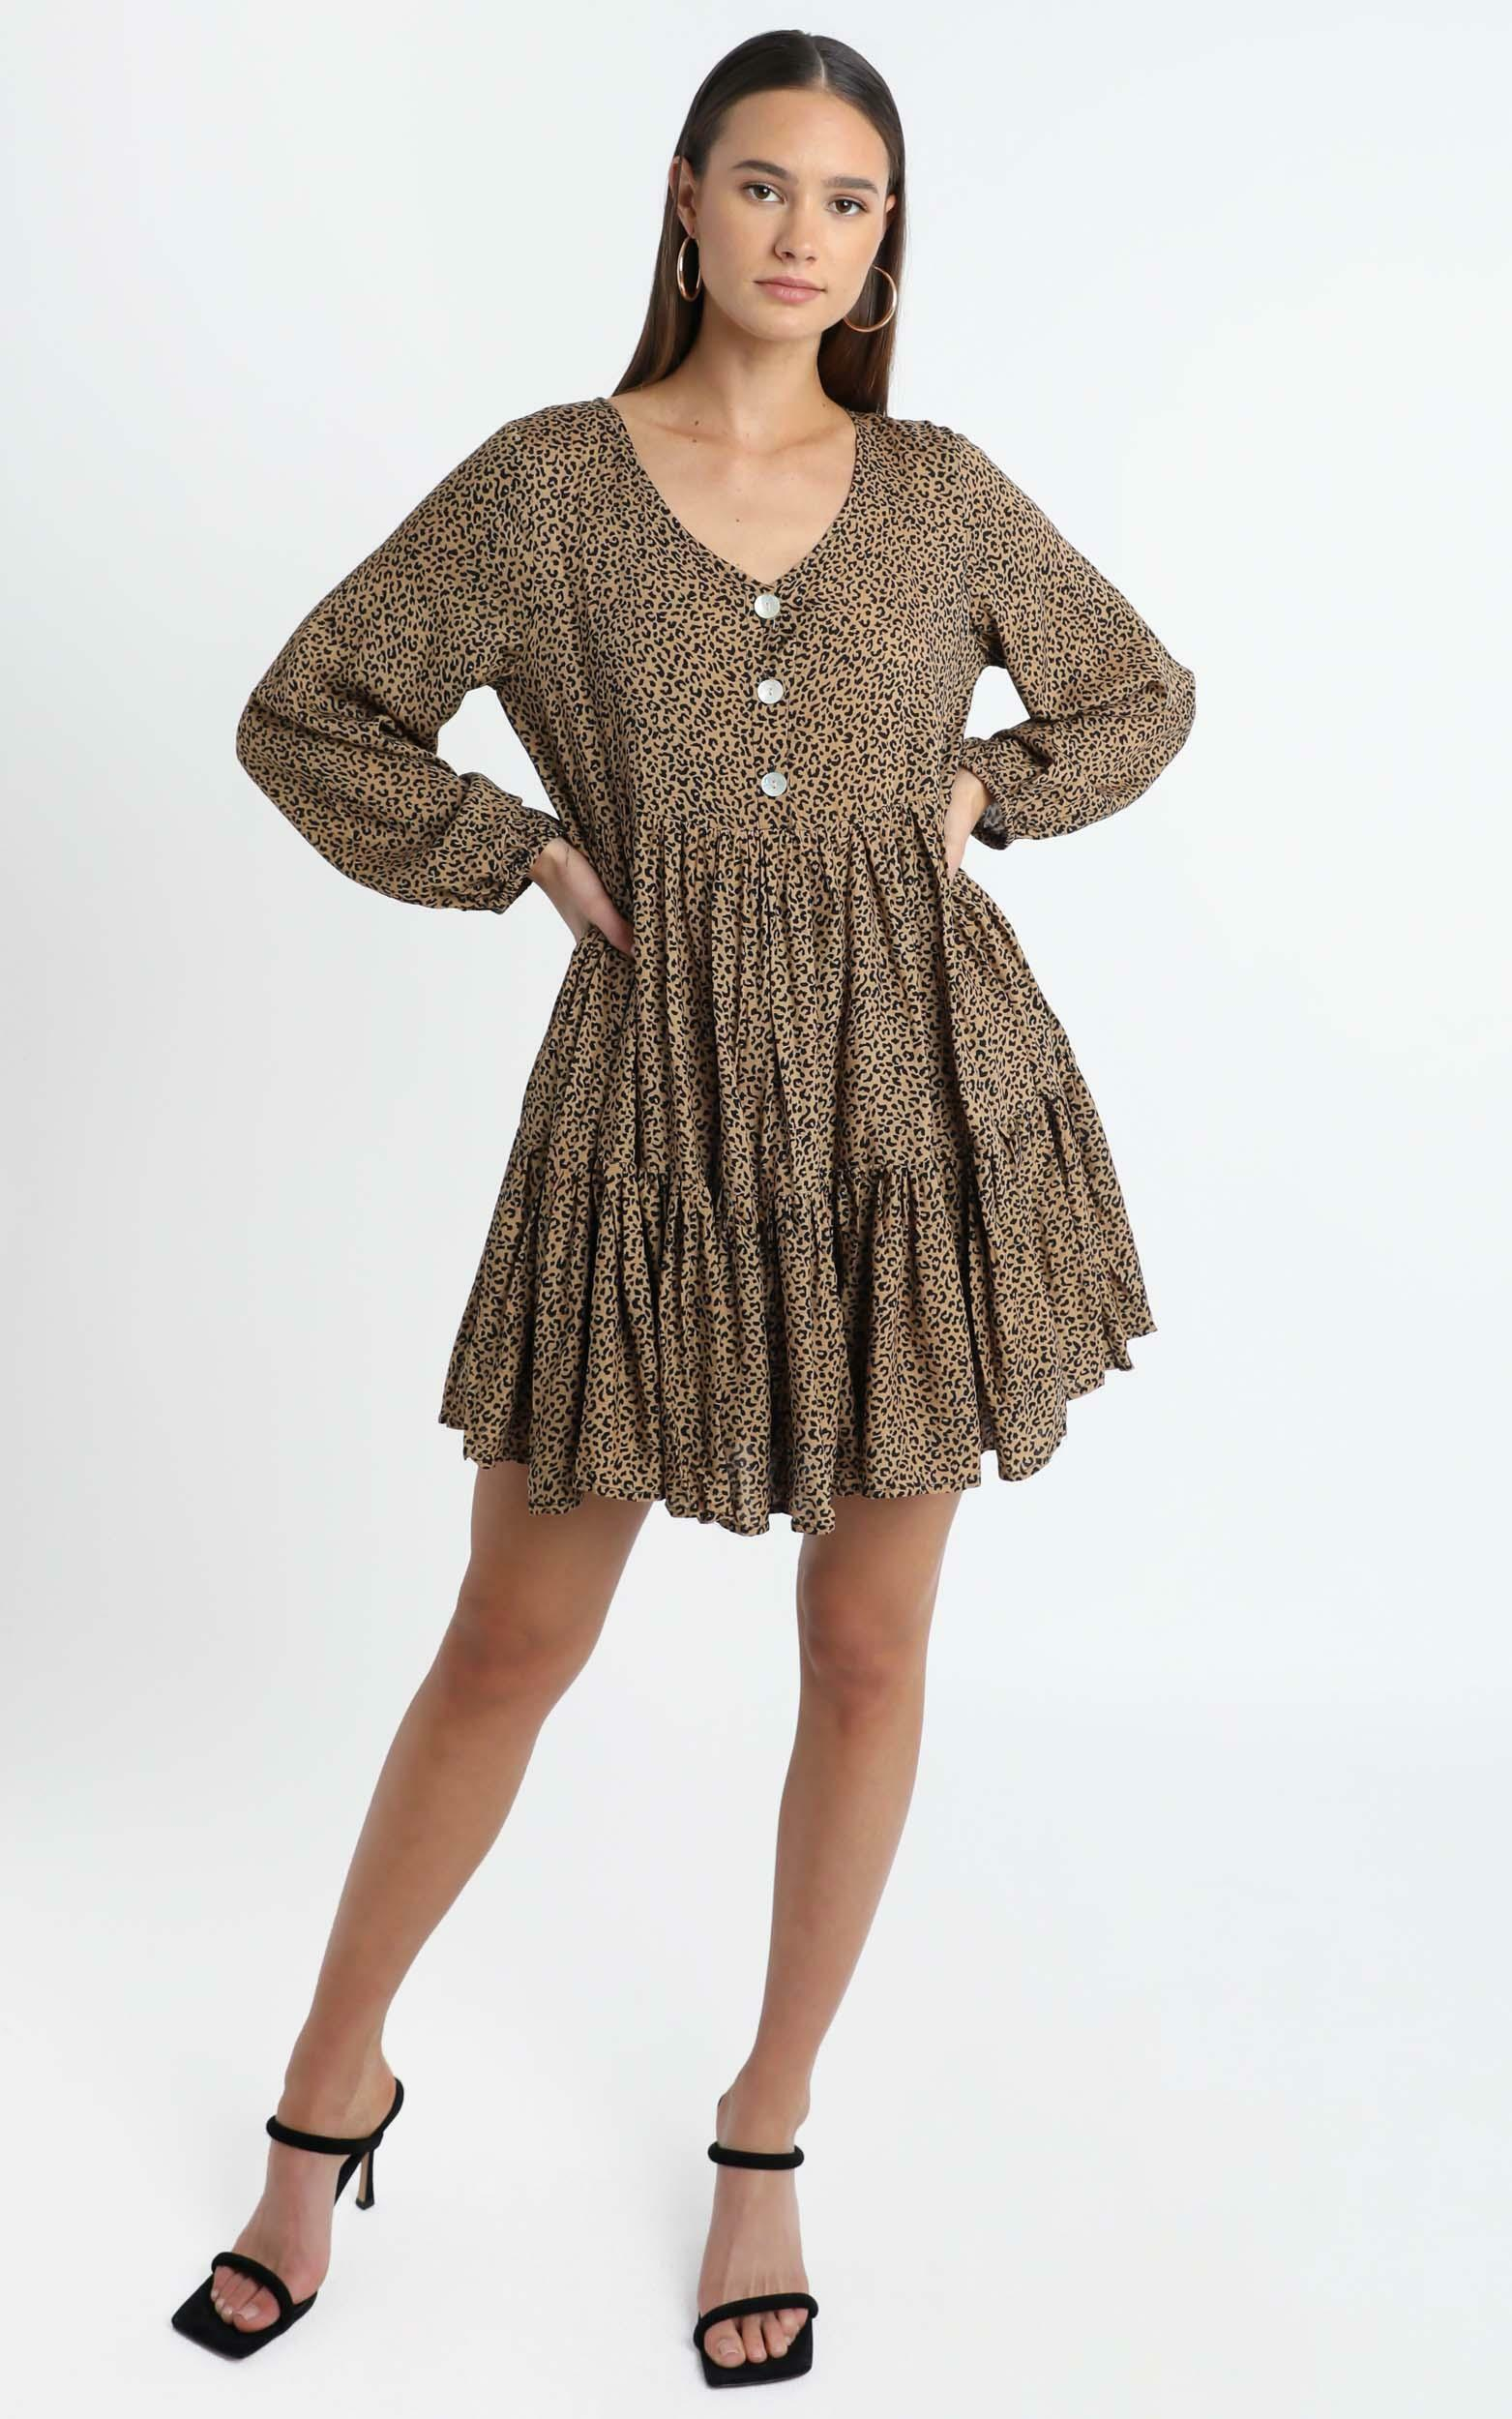 Chester Dress in Leopard Print - 14 (XL), Brown, hi-res image number null